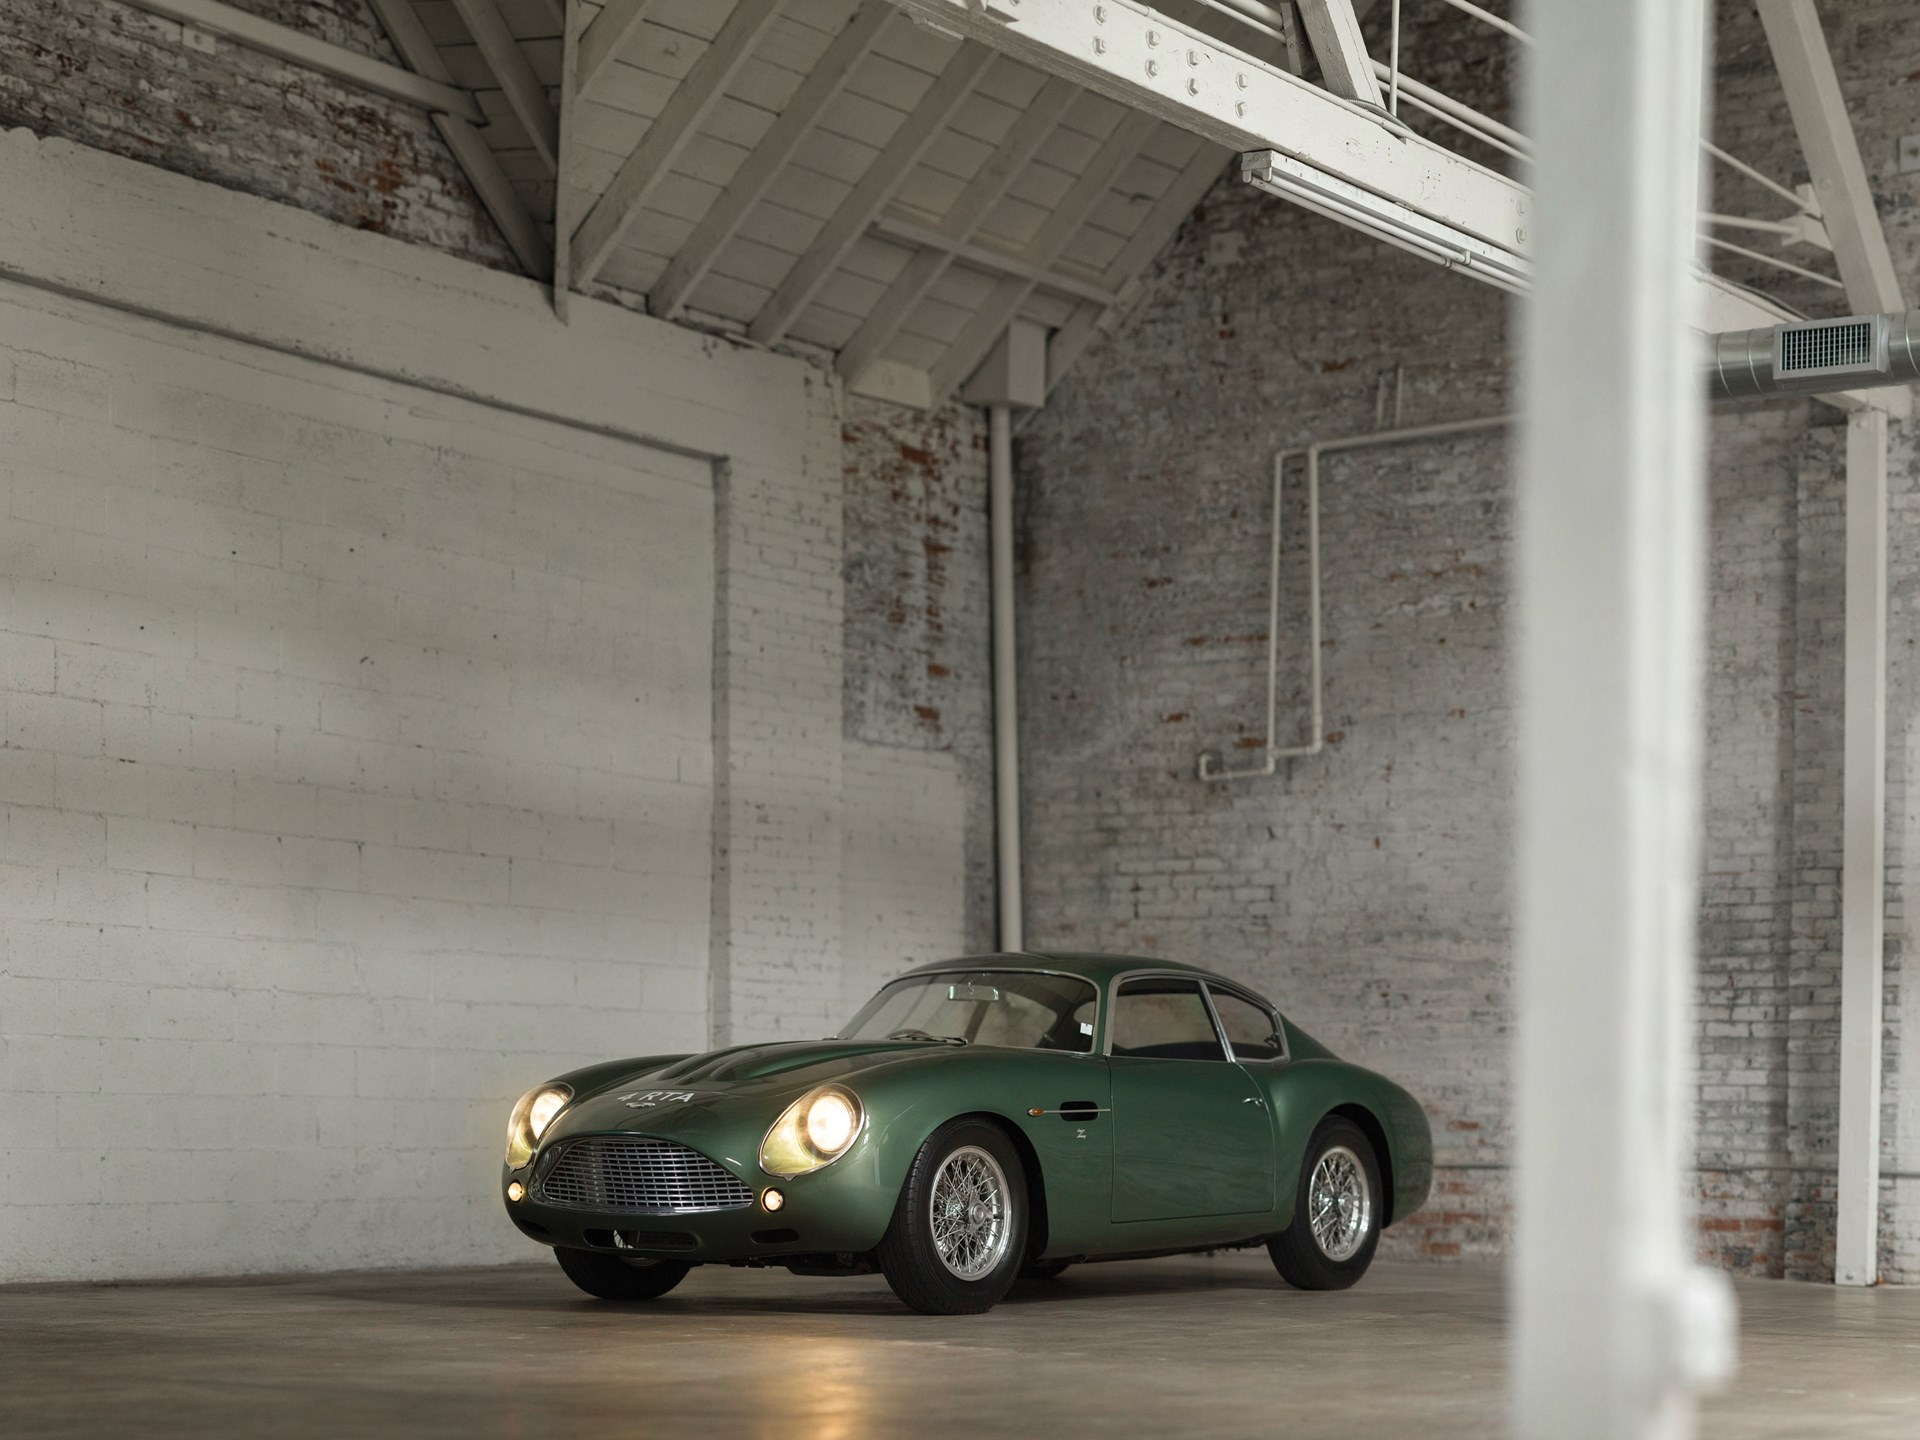 rm sotheby's - 1962 aston martin db4gt zagato | new york - driven